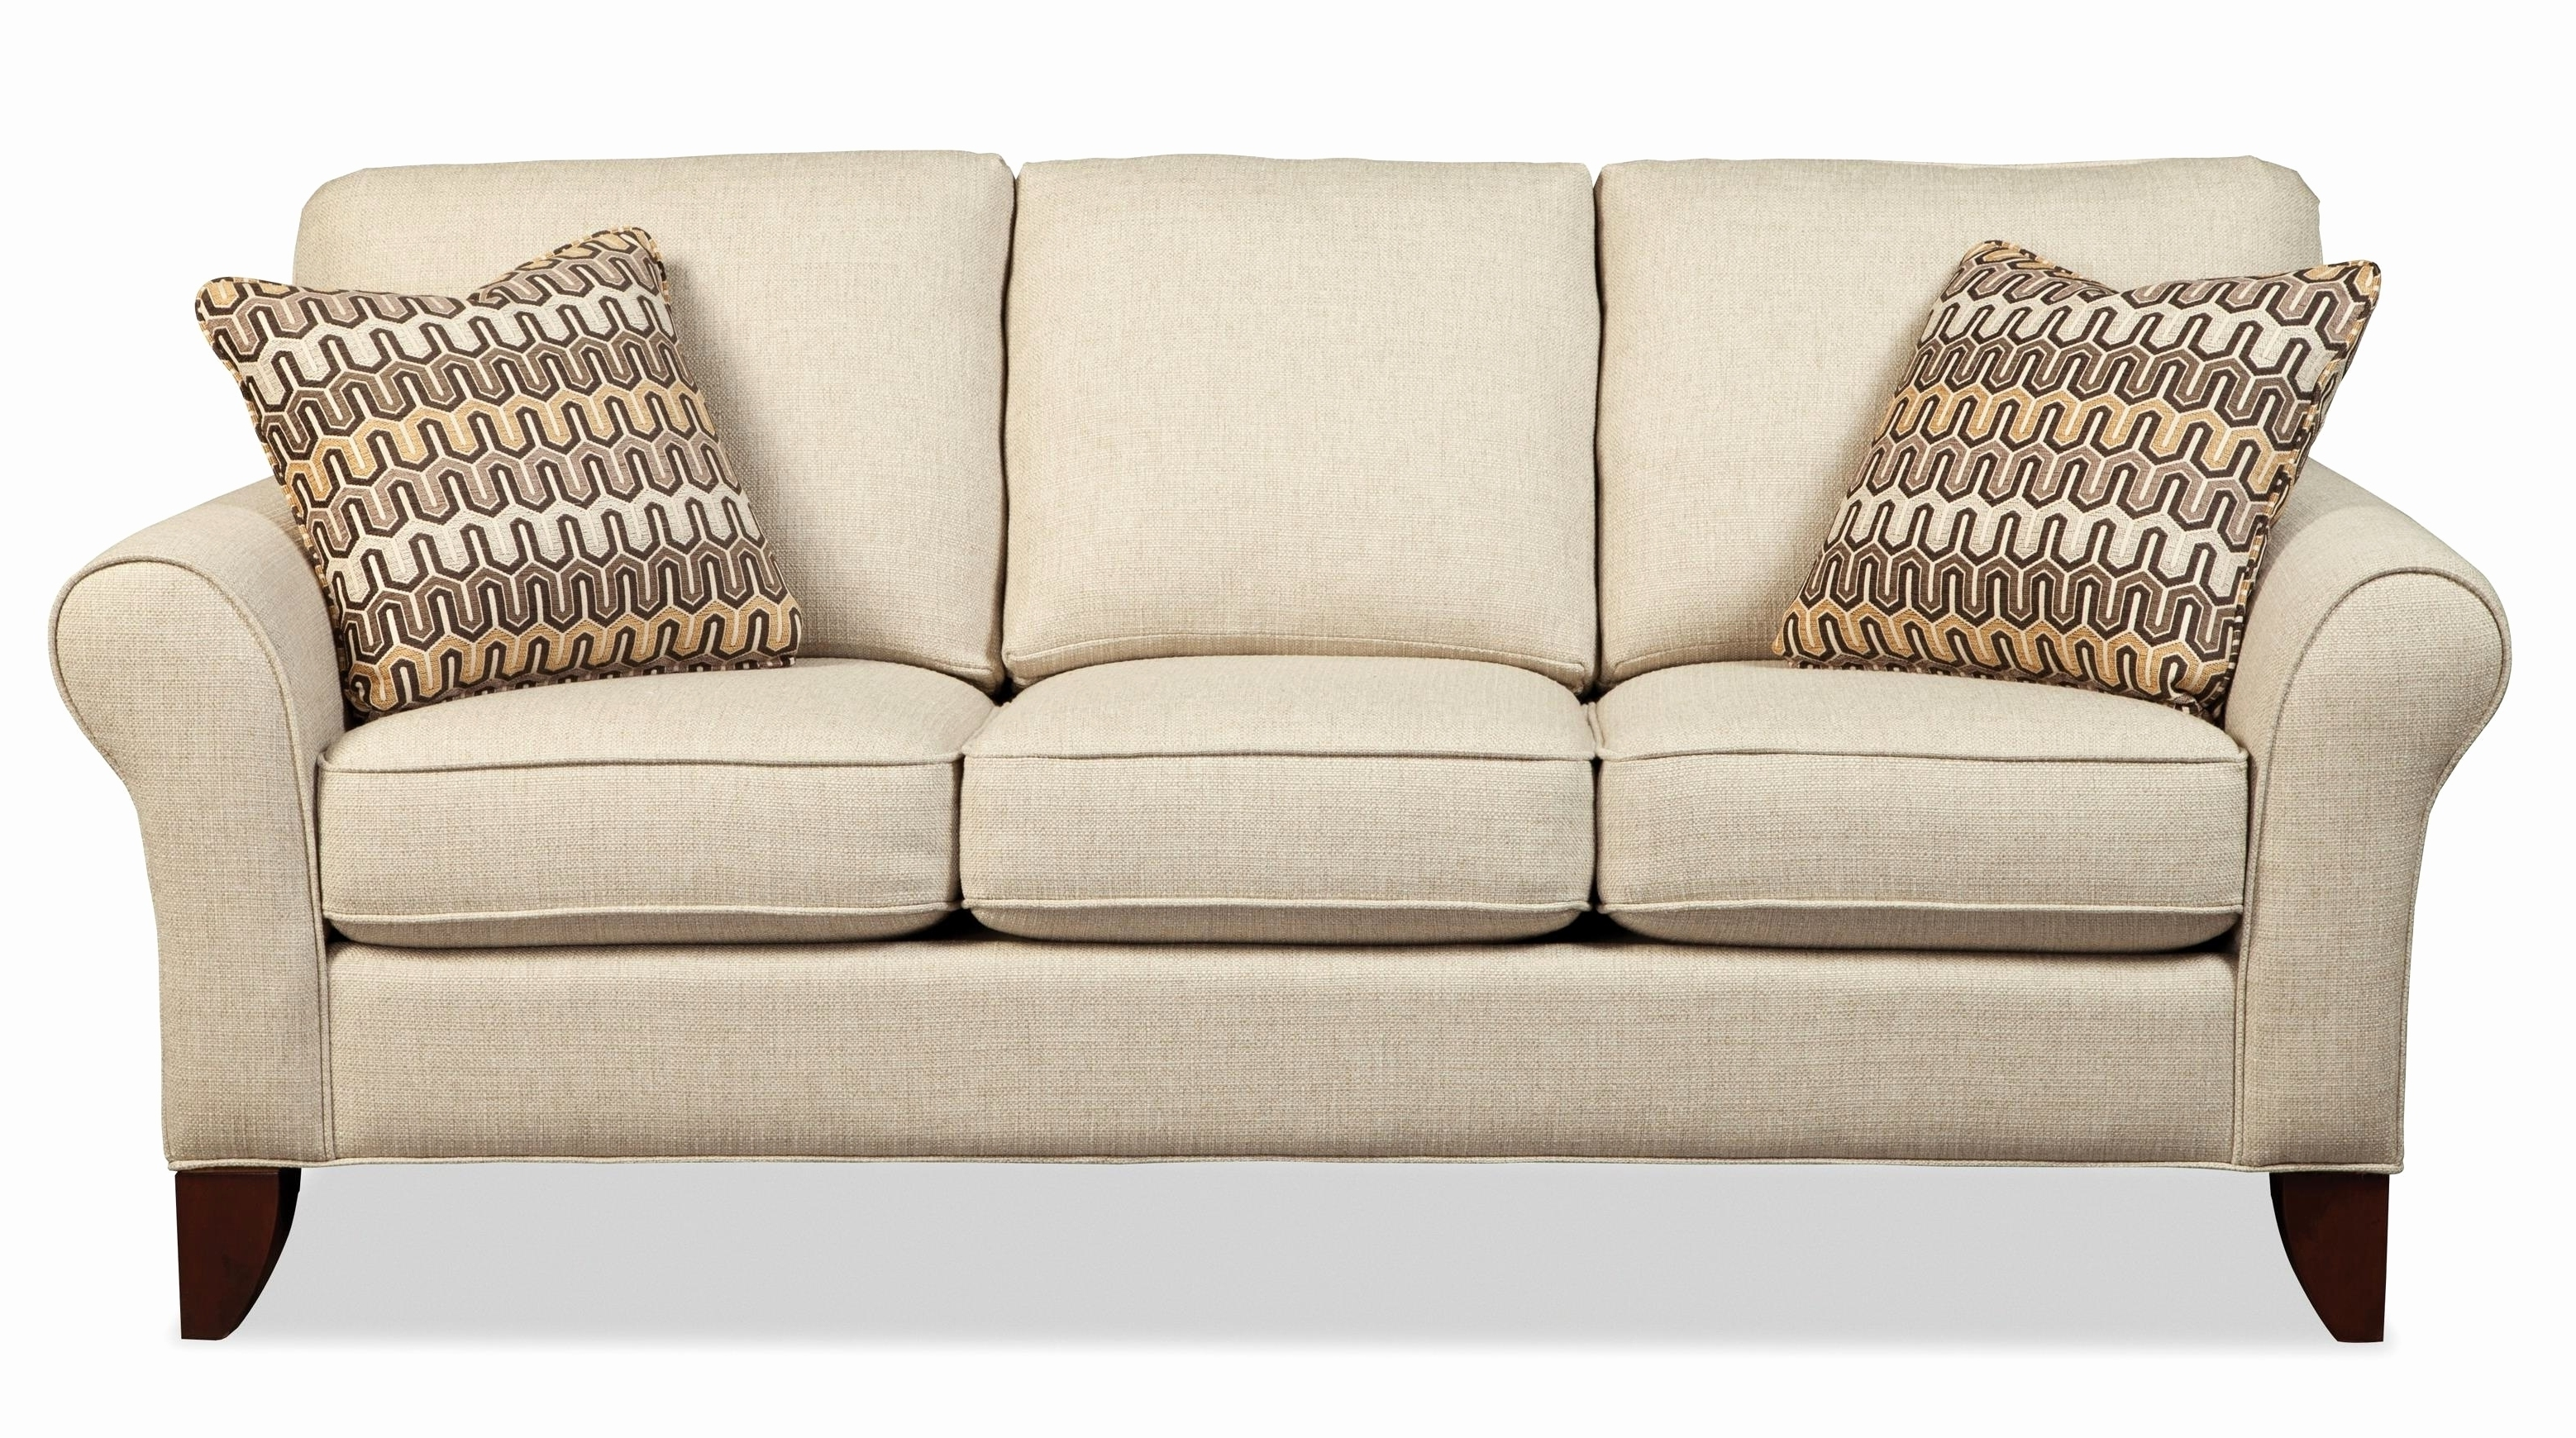 Lovely Small Scale Leather Sofa 2018 – Couches And Sofas Ideas In Most Recently Released Small Scale Sofas (View 2 of 15)